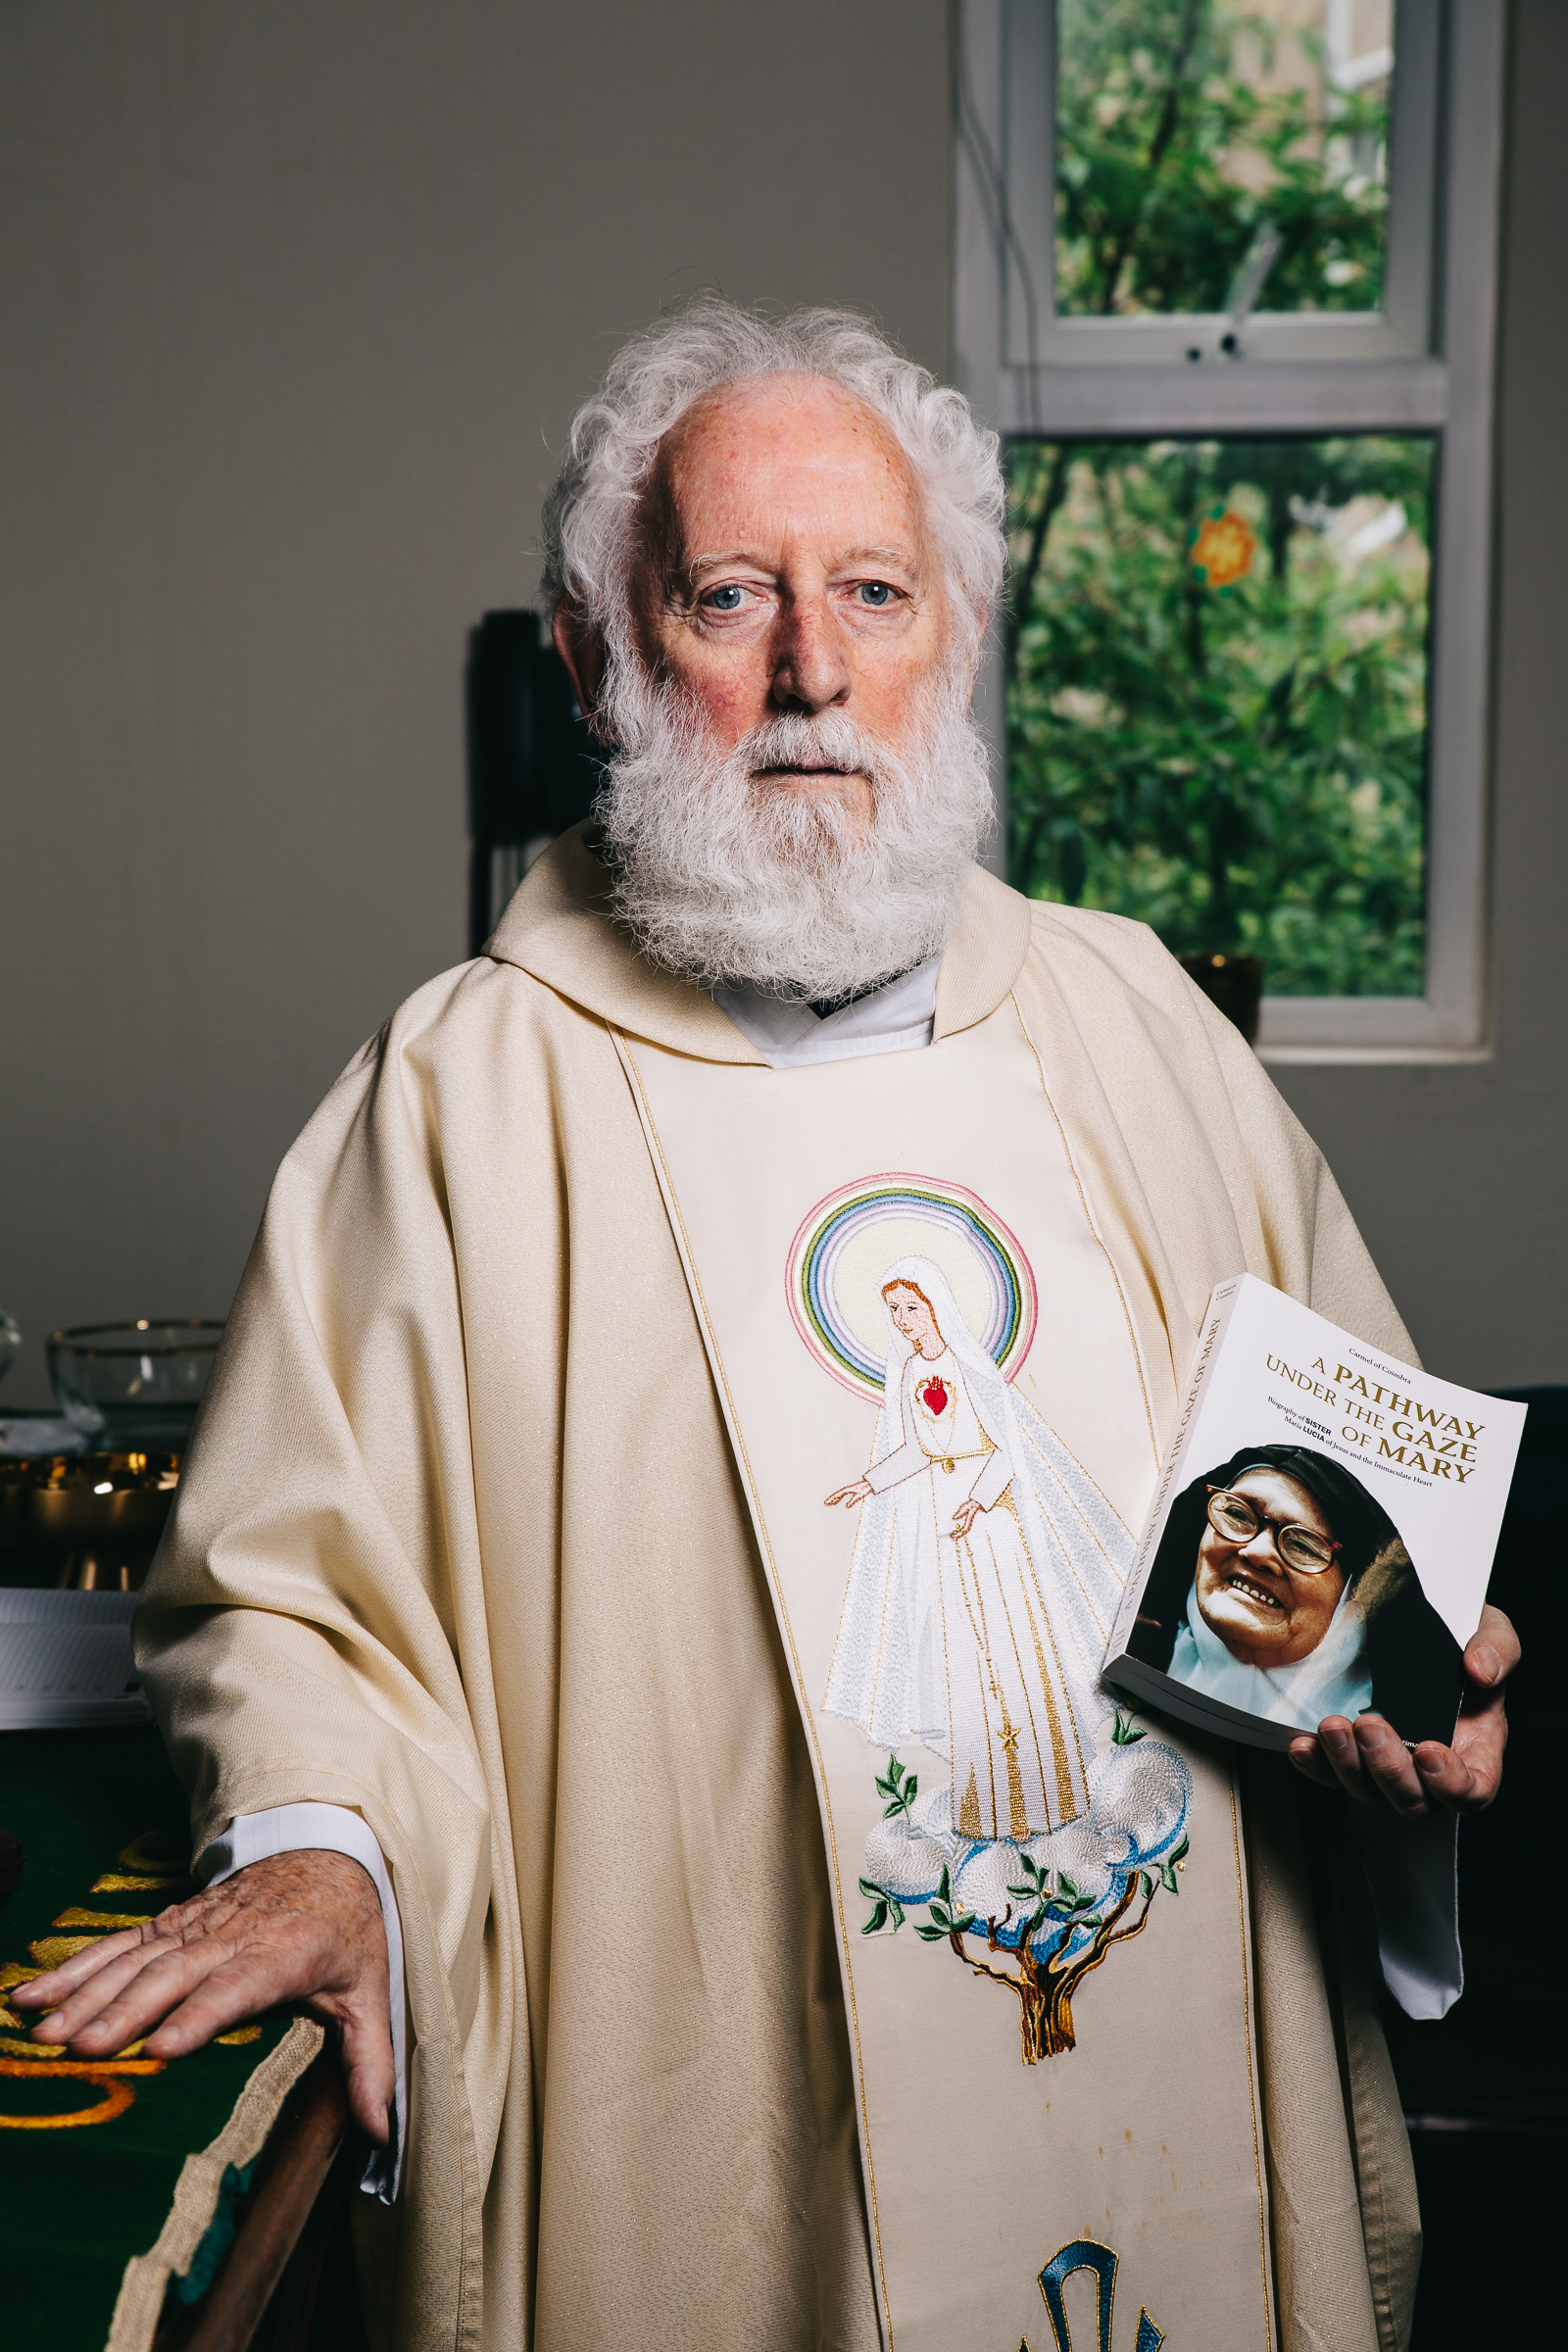 Dressed To Praise - Robed with vestments of Our Lady Of Fatima that he got 10 years ago in Portugal, Fr.Maher turns and shows me the book, a biography of Lucia. It's the latest most popular book doing the rounds and so it stays with him at all times.